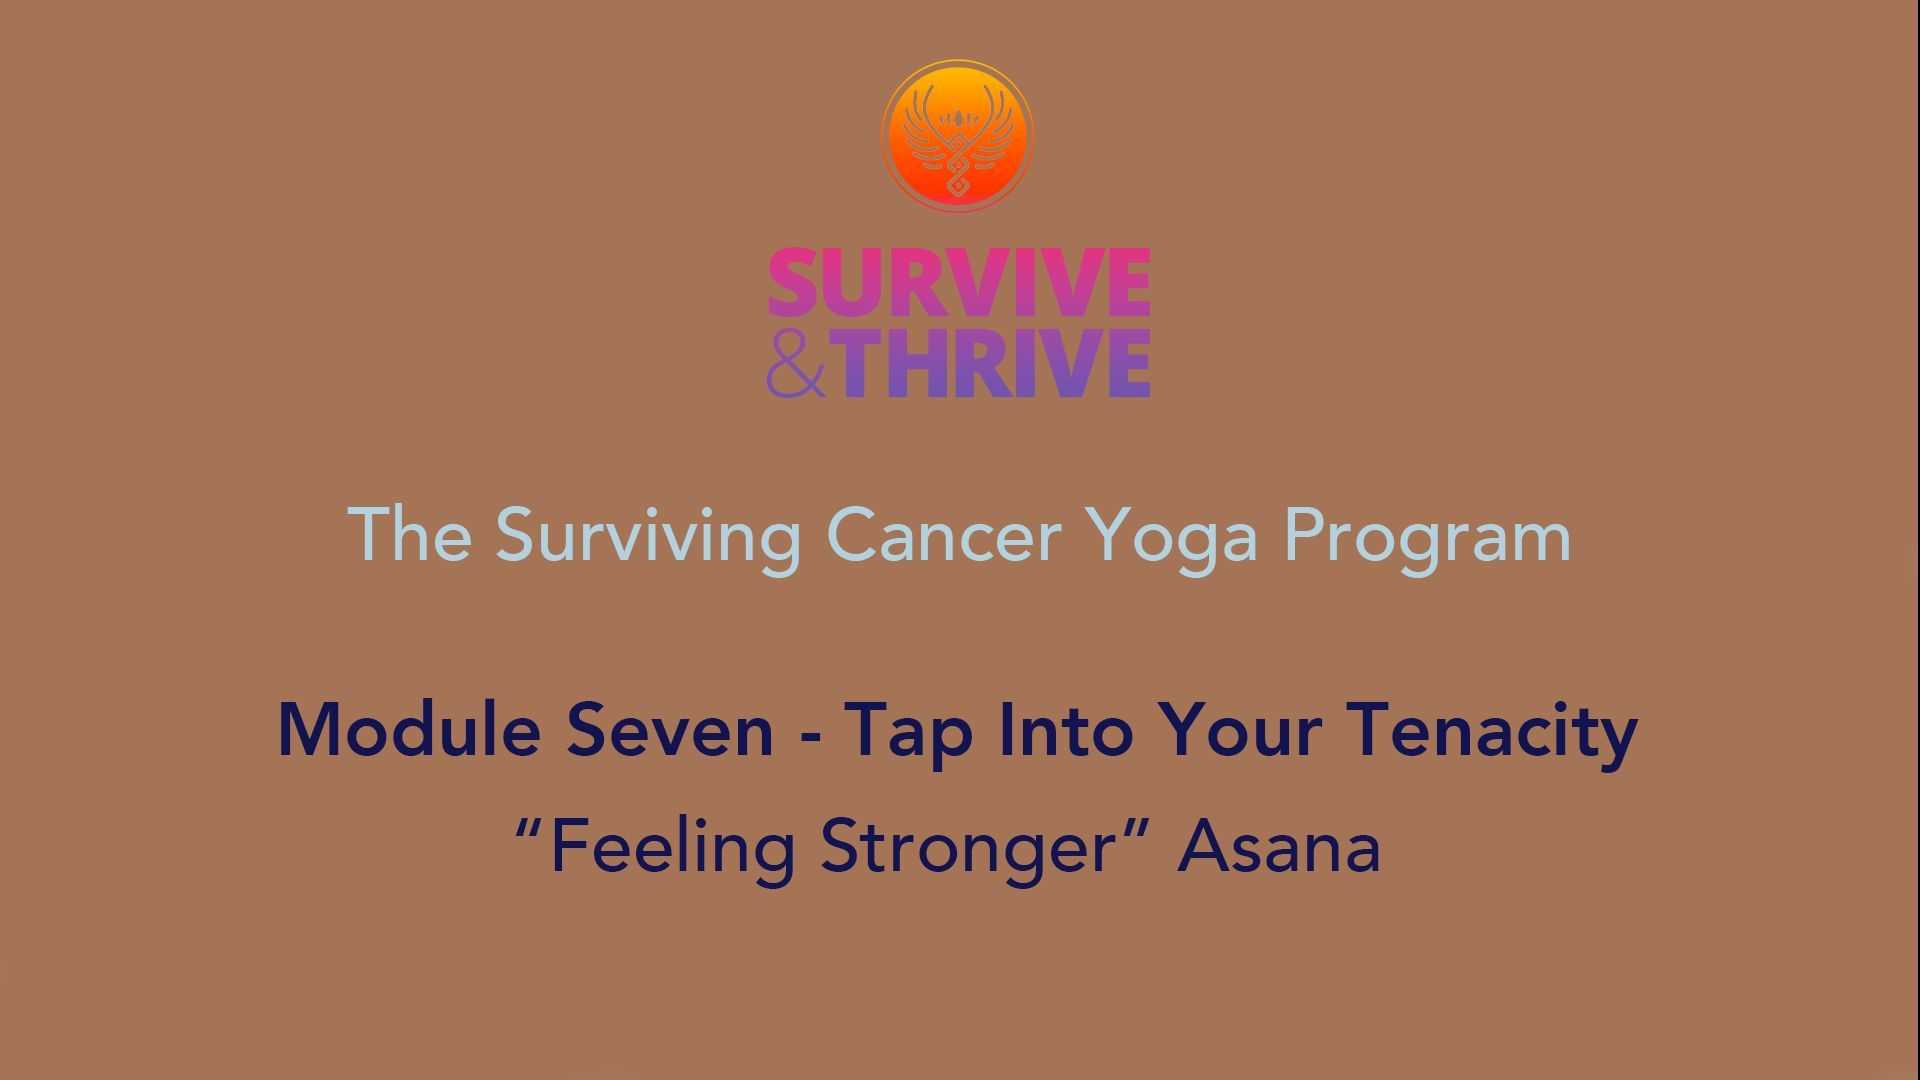 SURVIVE AND THRIVE | MODULE 7 - TAP INTO YOUR TENACITY | FEELING STRONGER ASANA